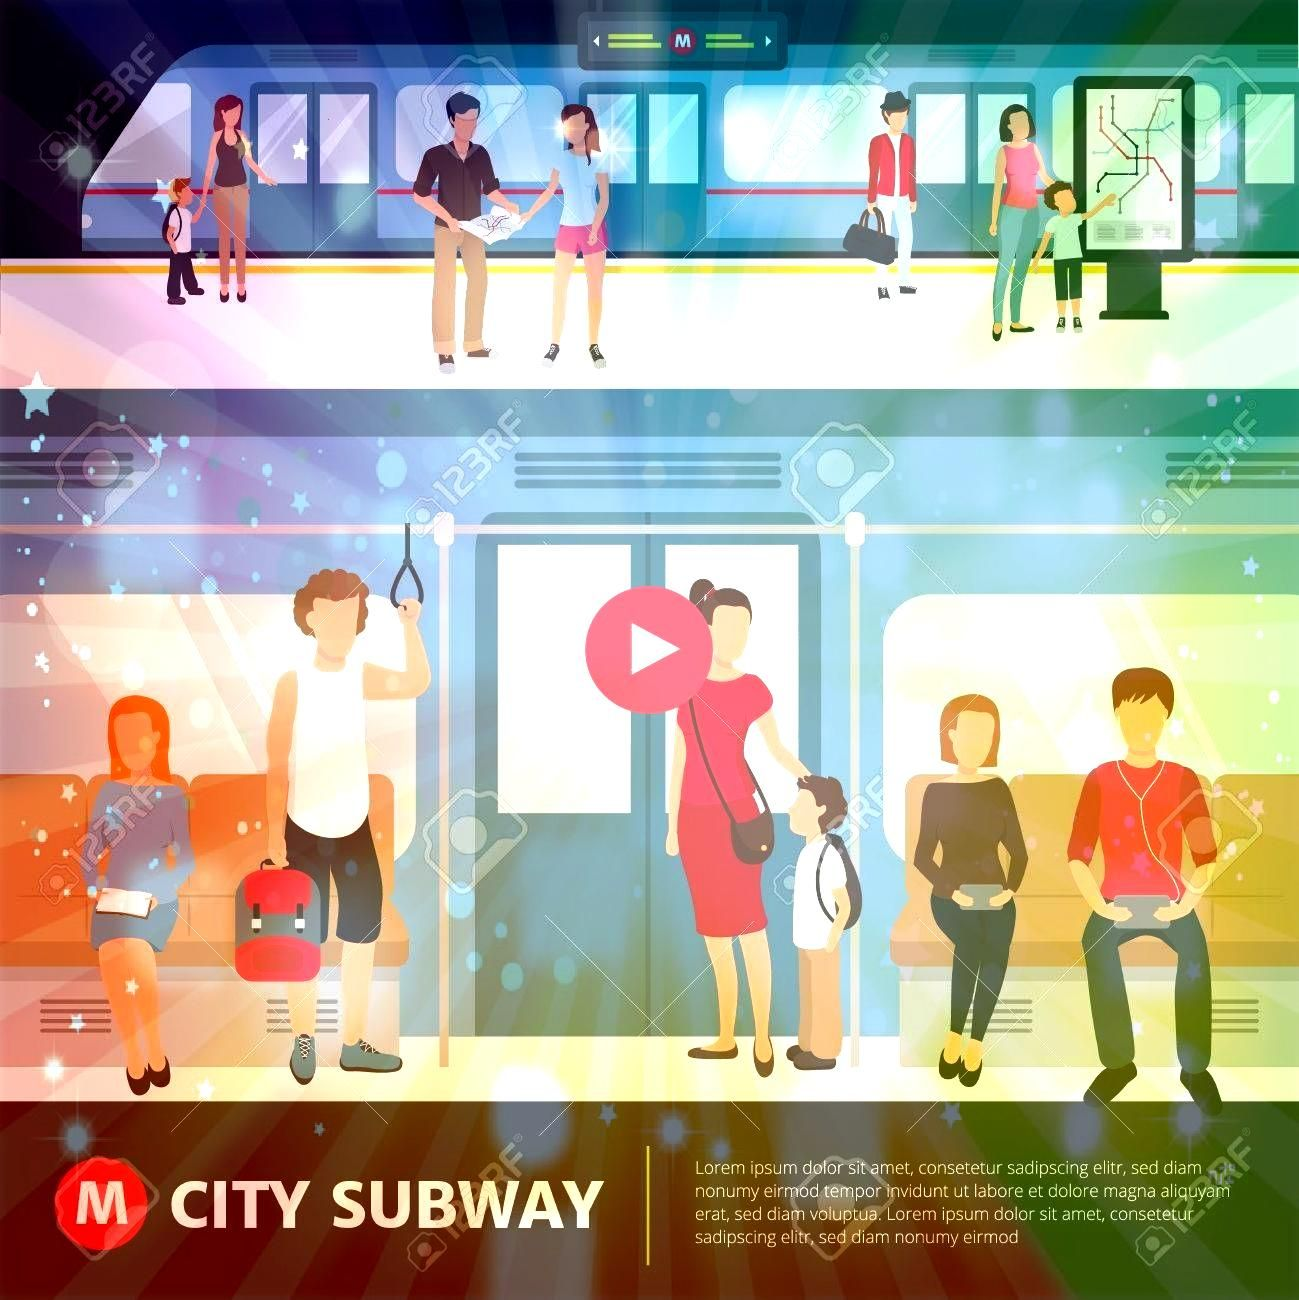 in city subway inside train and waiting at station flat vector illustration Illustration People in city subway inside train and waiting at station flat vector illustratio...